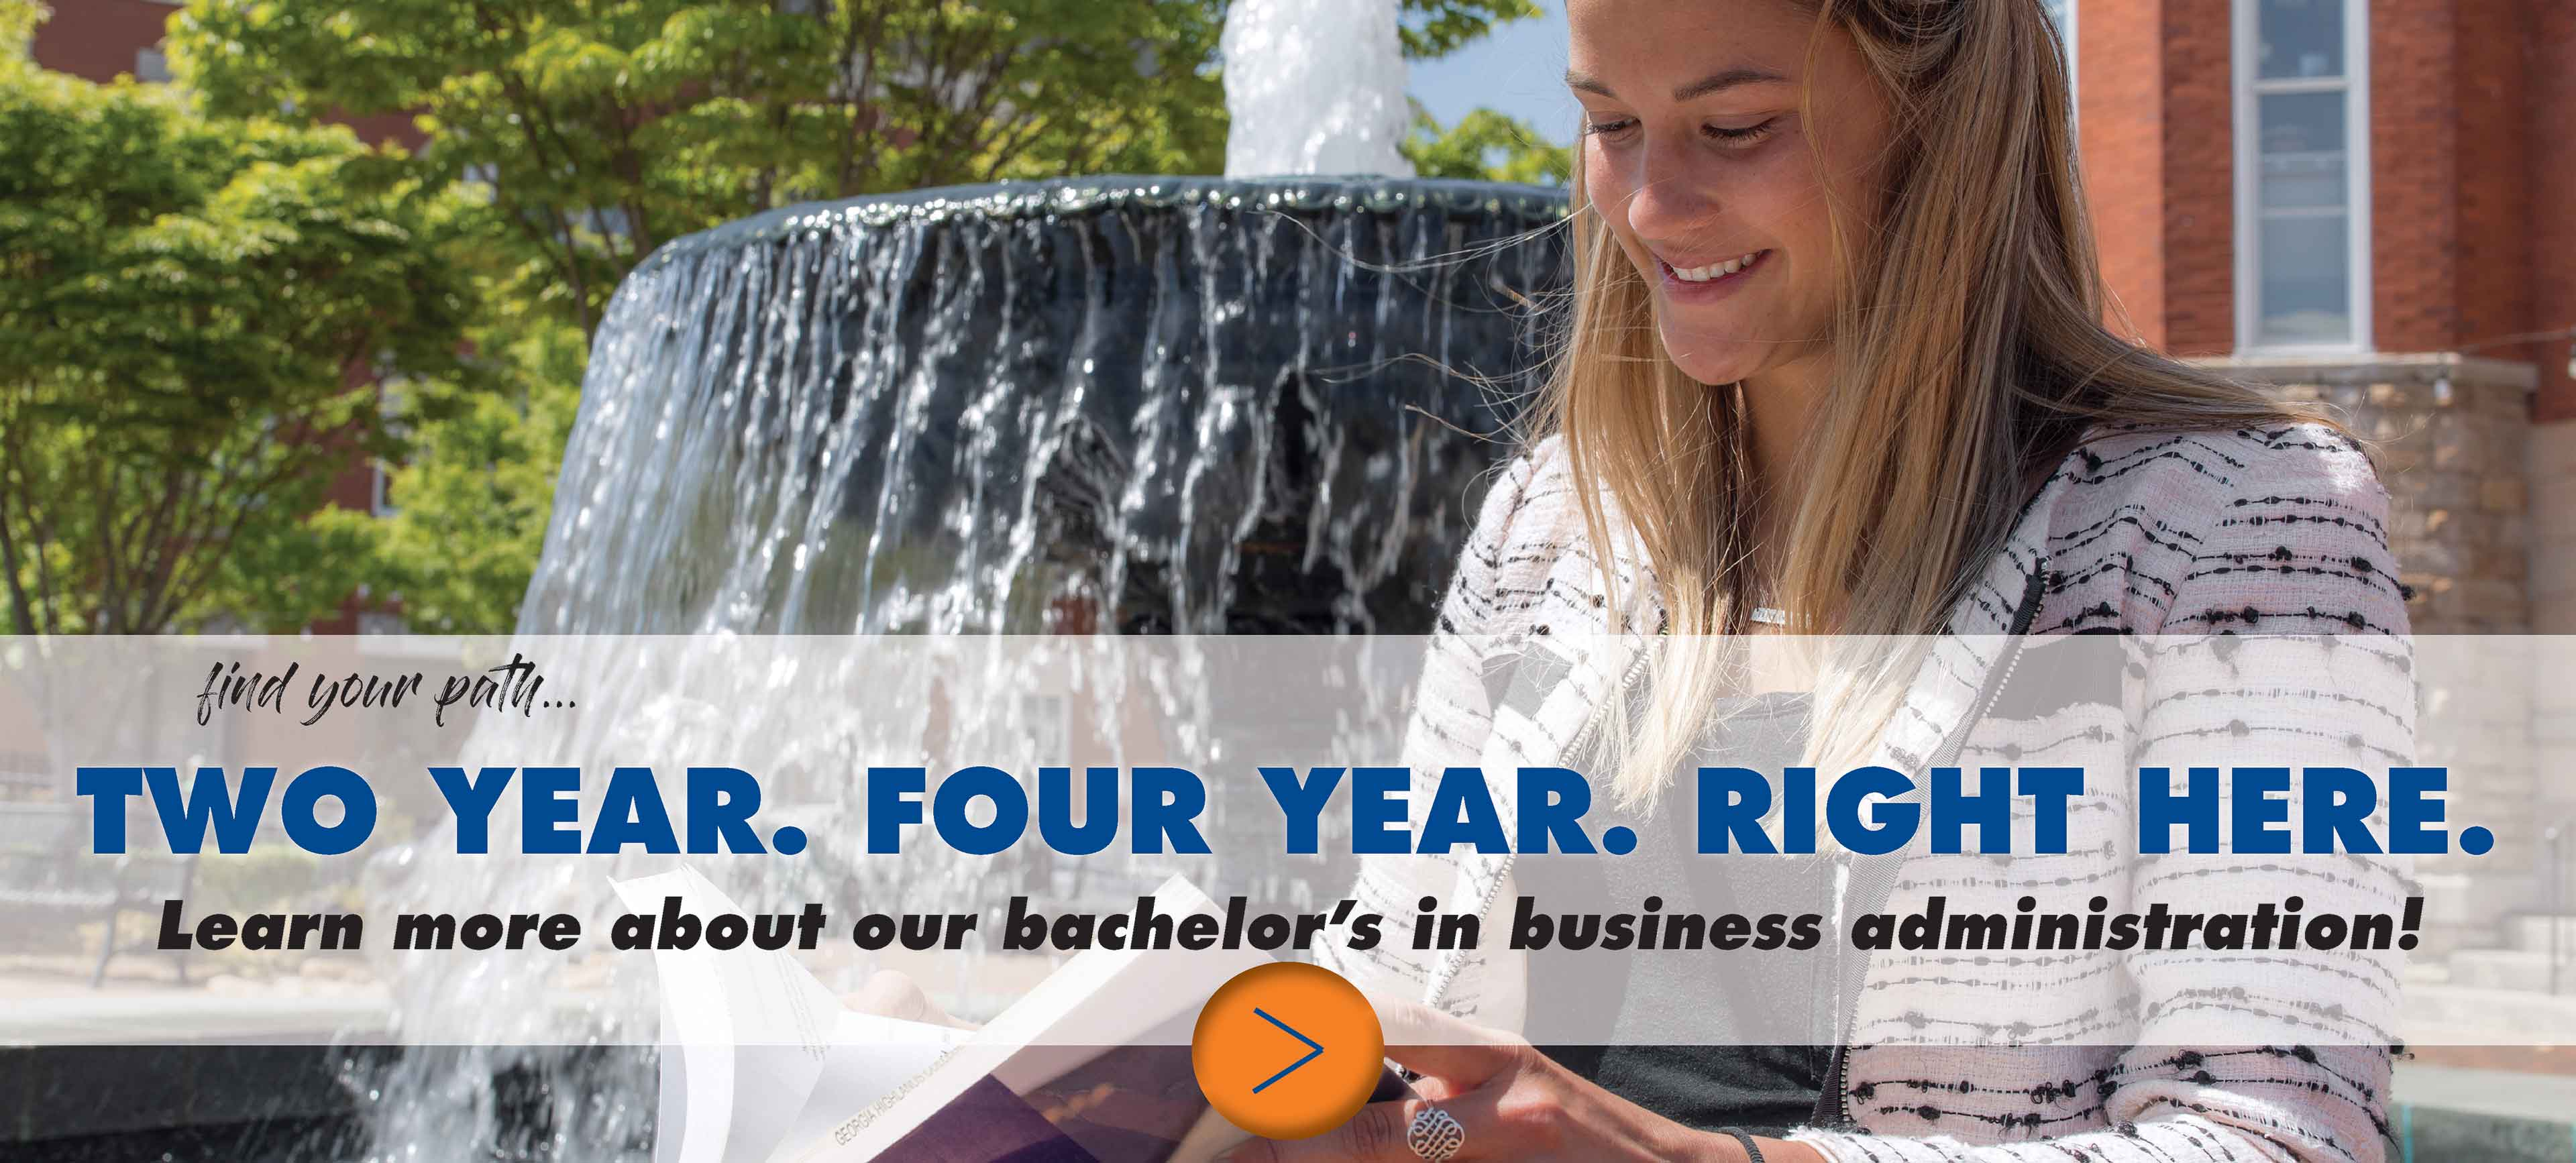 Find your path... 2-year. 4-year. Right here. Learn more about our bachelor's in business administration!